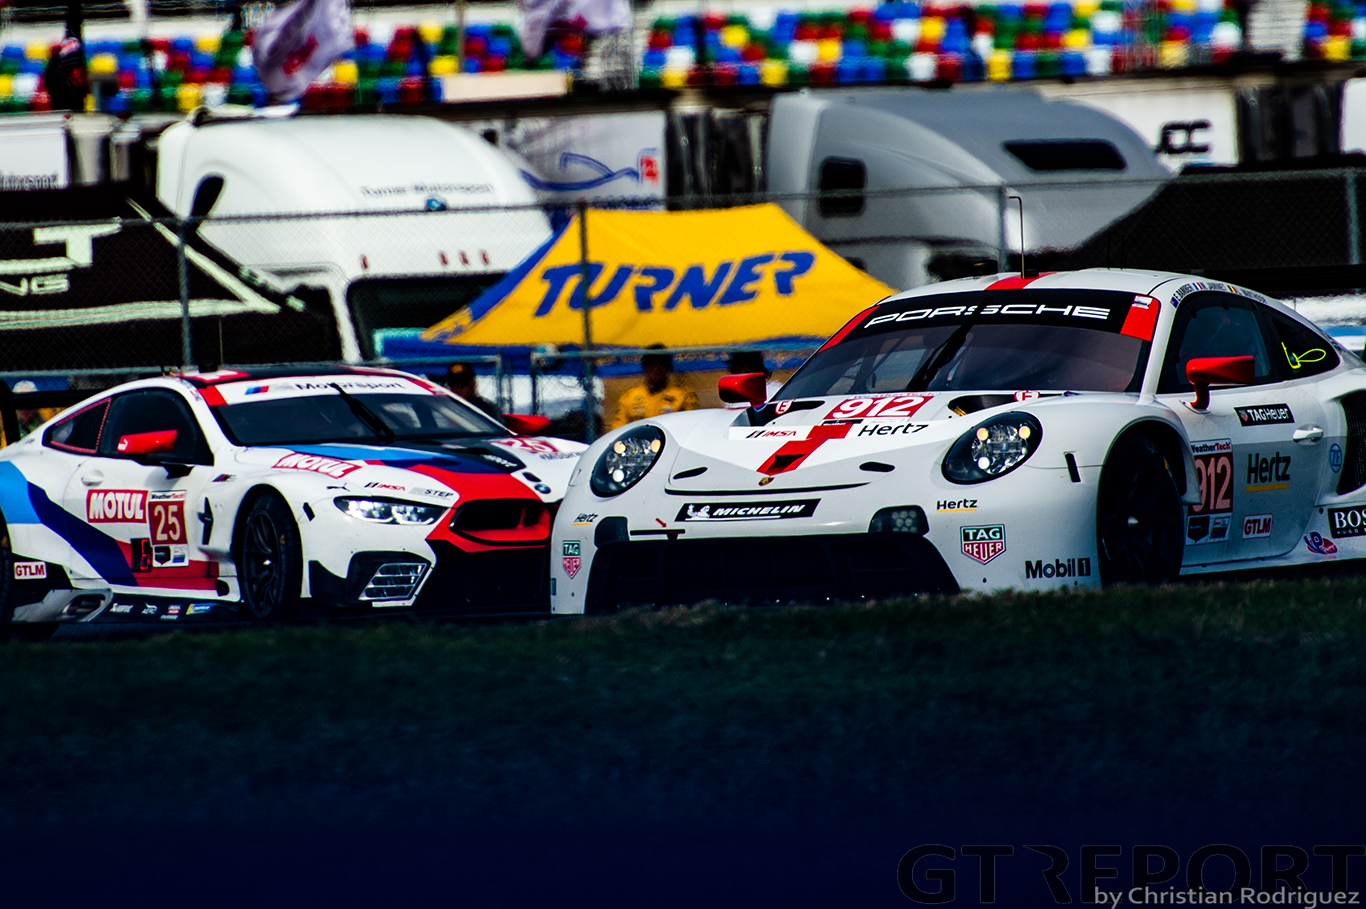 IMSA Sebring SuperSaturday live stream